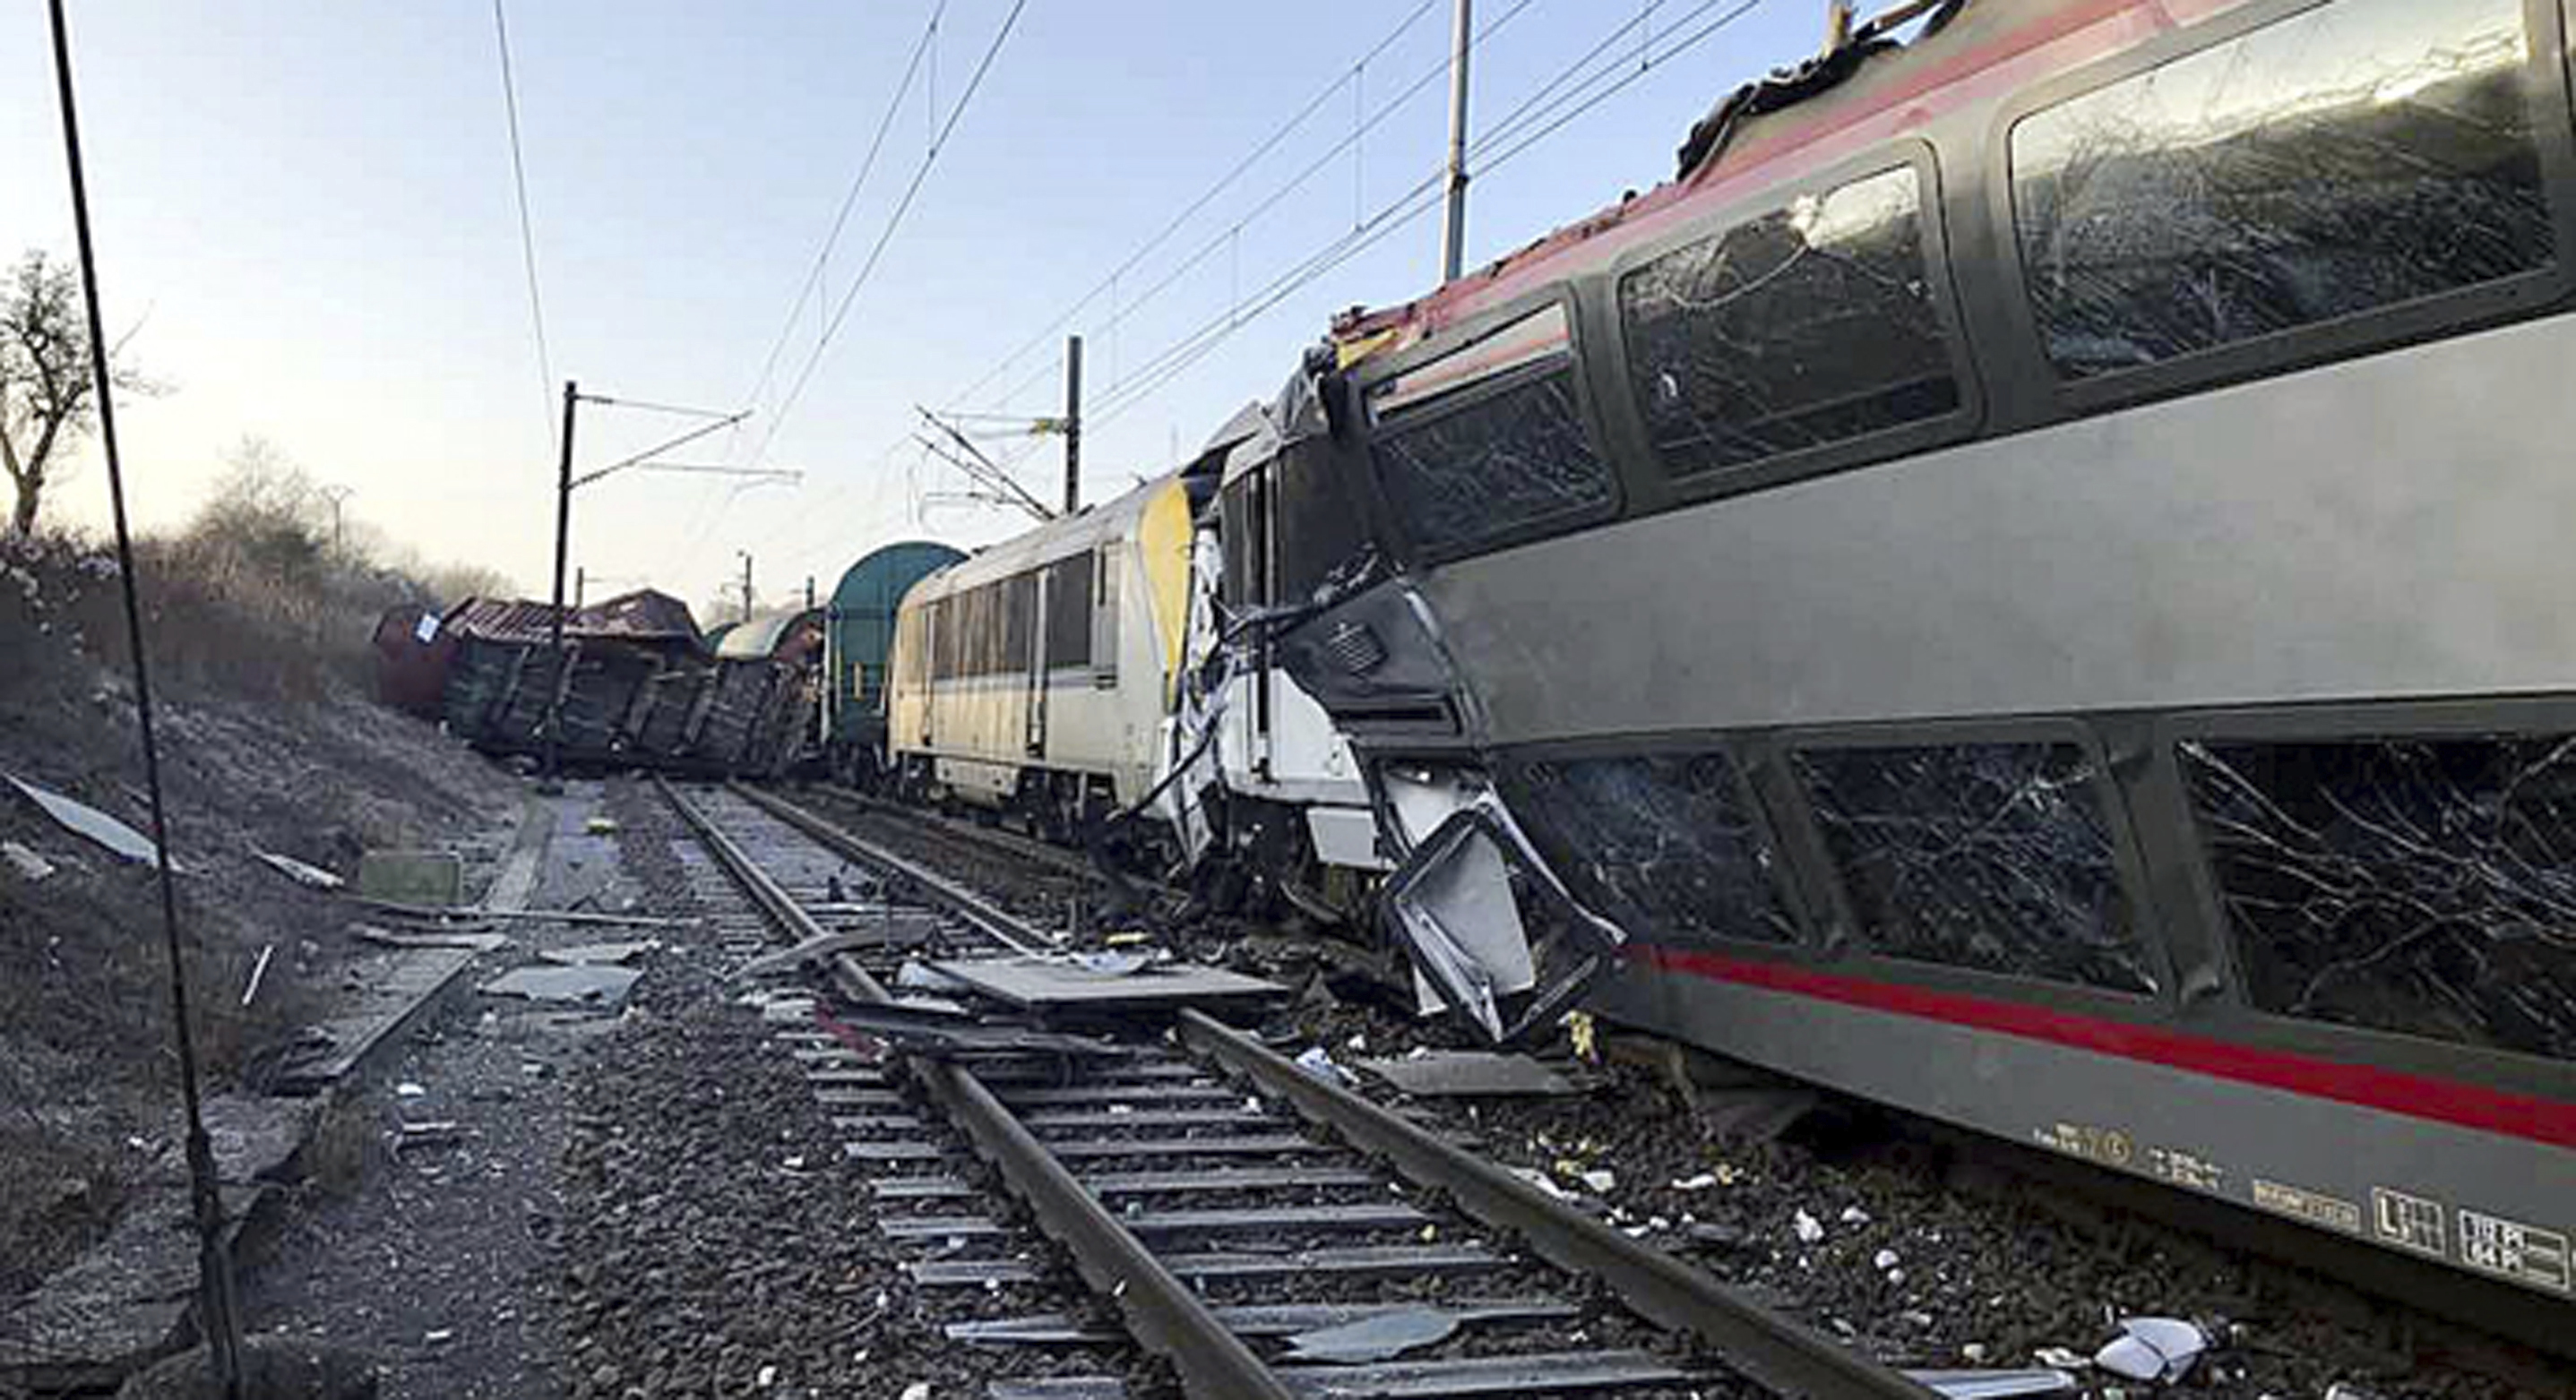 In this image provided by the Luxembourg Police Grand Ducale, the wreckage of a passenger train and a freight train after they collided in Bettemberg, Luxembourg on Feb. 14, 2017. (Luxembourg Police Grand Ducale via AP)